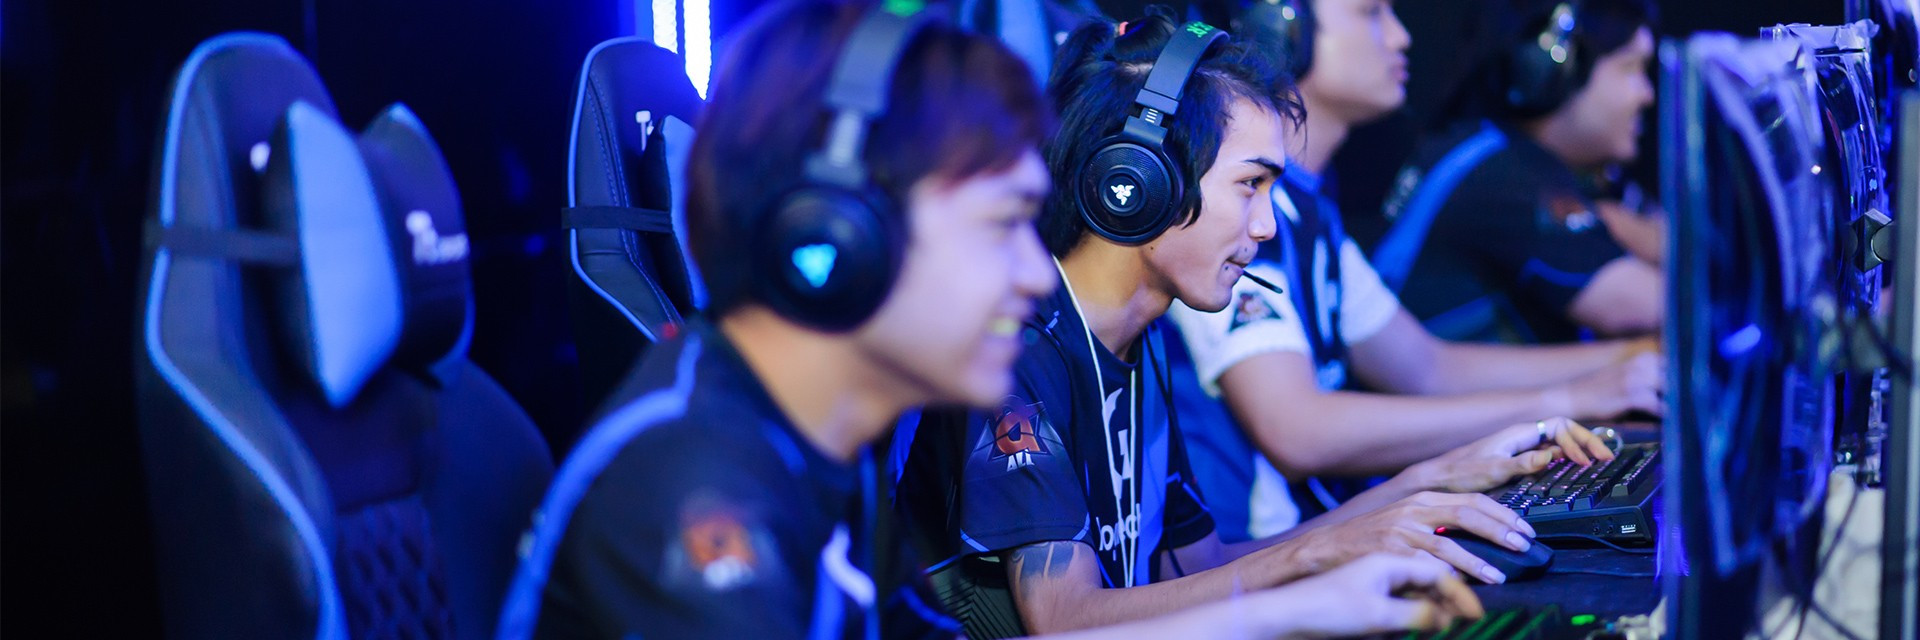 Esports is featuring as a demonstration sport at the 2017 Asian Indoor and Martial Arts Games ©Ashgabat 2017